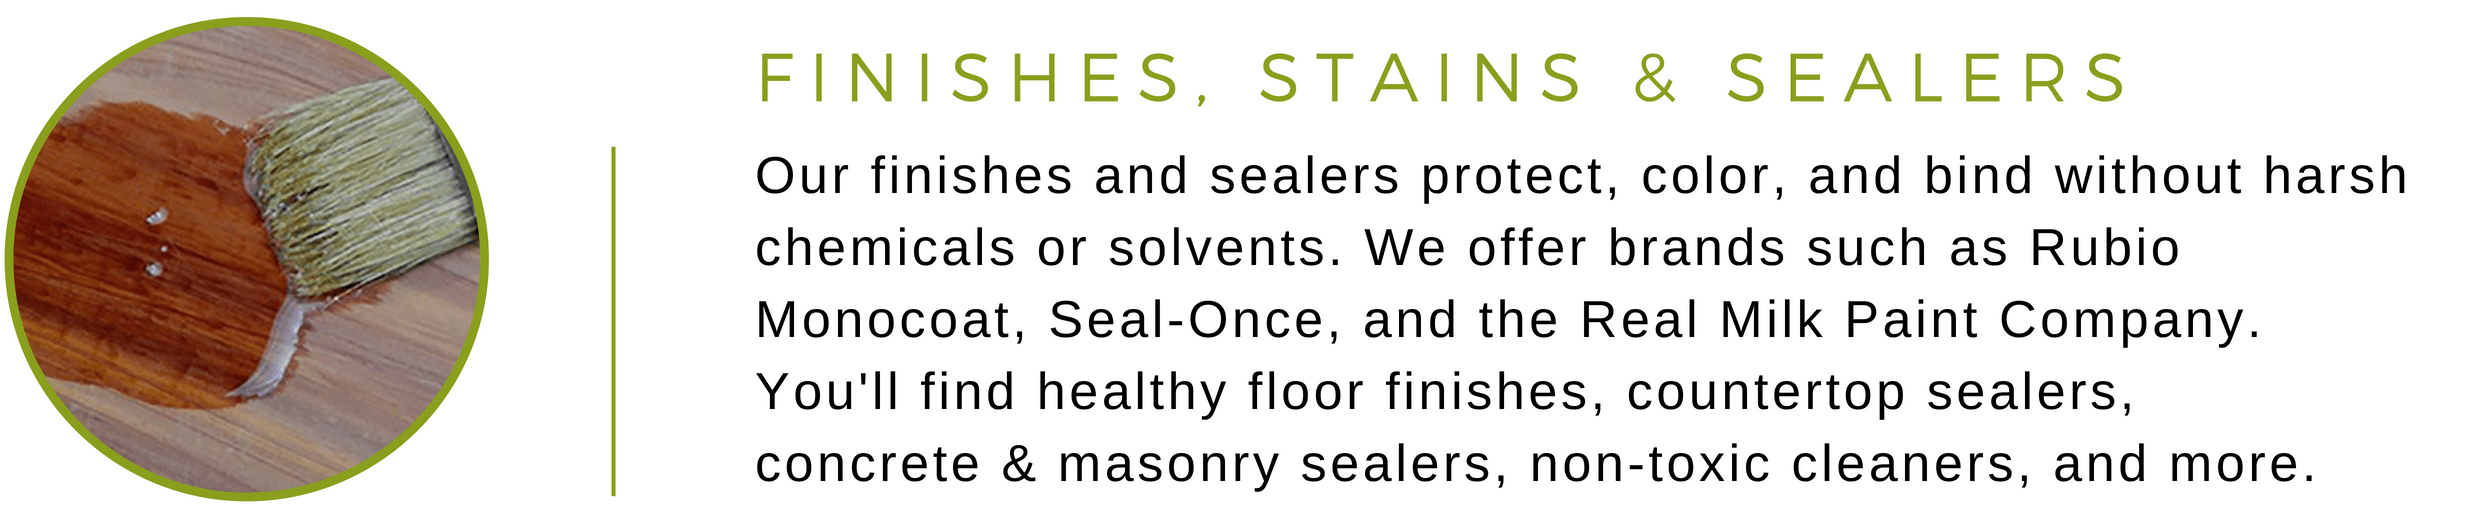 Our finishes and sealers protect, color, and bind without harsh chemicals or solvents. We offer brands such as Rubio Monocoat, Seal-Once, and the Real Milk Paint Company. You'll find healthy floor finishes, countertop sealers,  concrete & masonry sealers, non-toxic cleaners, and more